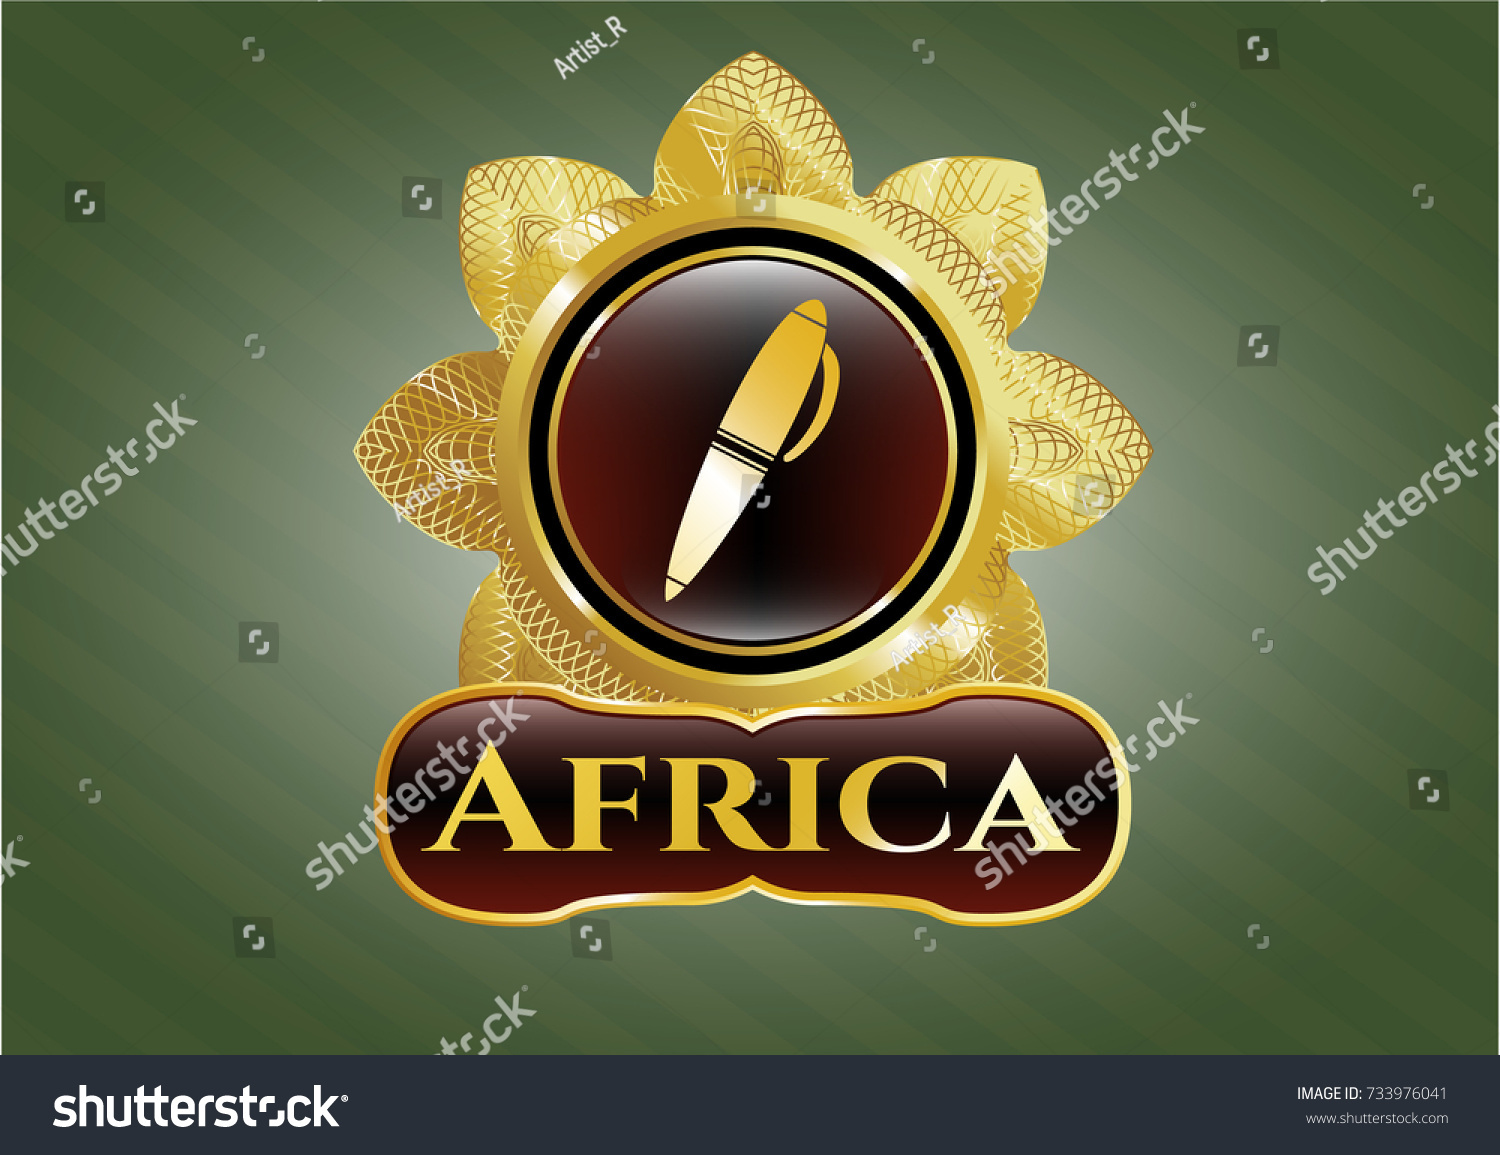 Gold emblem pen icon africa text stock vector 733976041 shutterstock gold emblem with pen icon and africa text inside biocorpaavc Choice Image